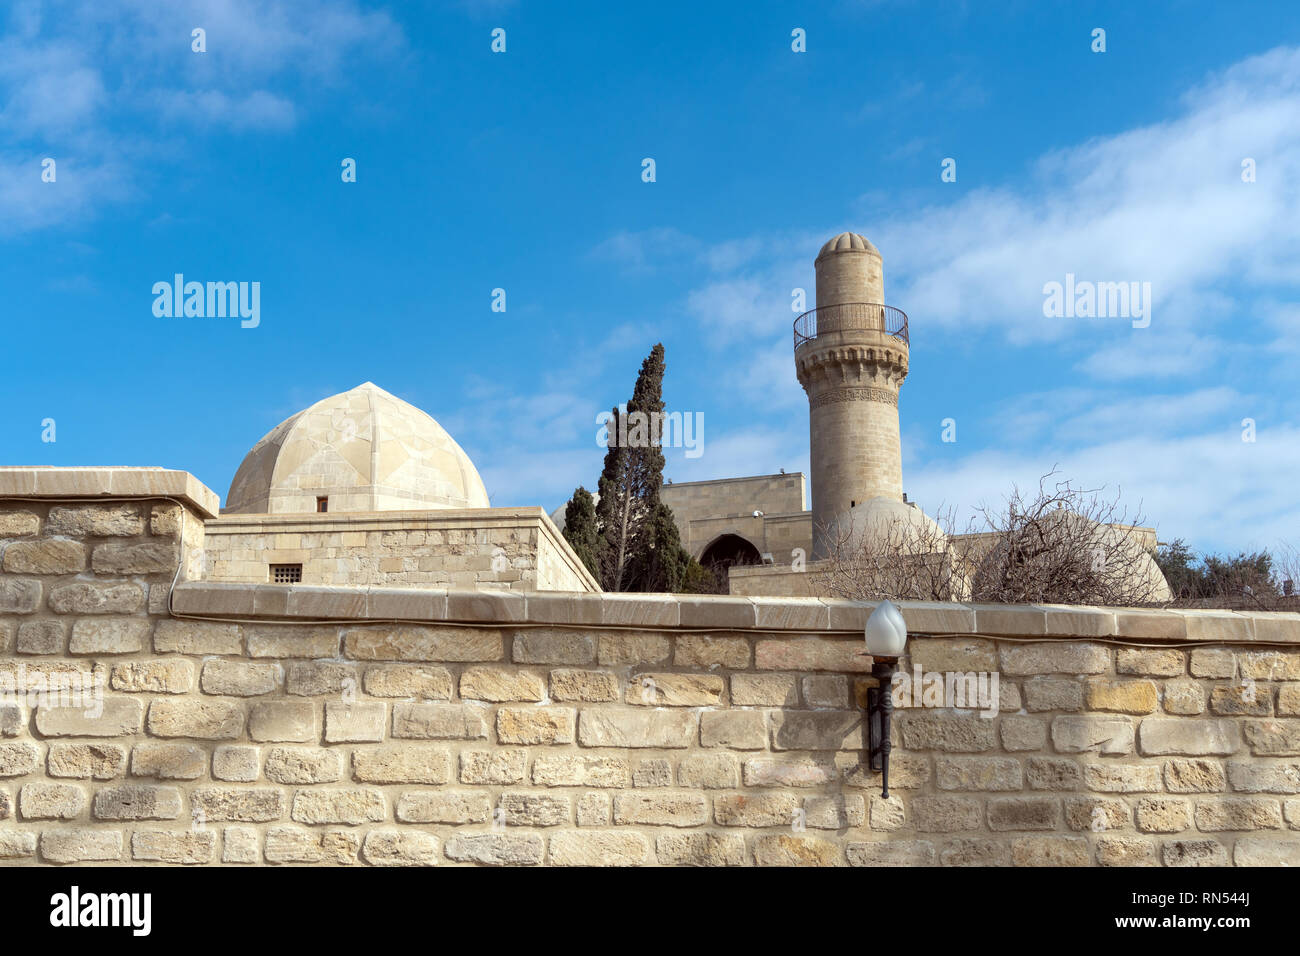 Minaret in the old town, - Stock Image